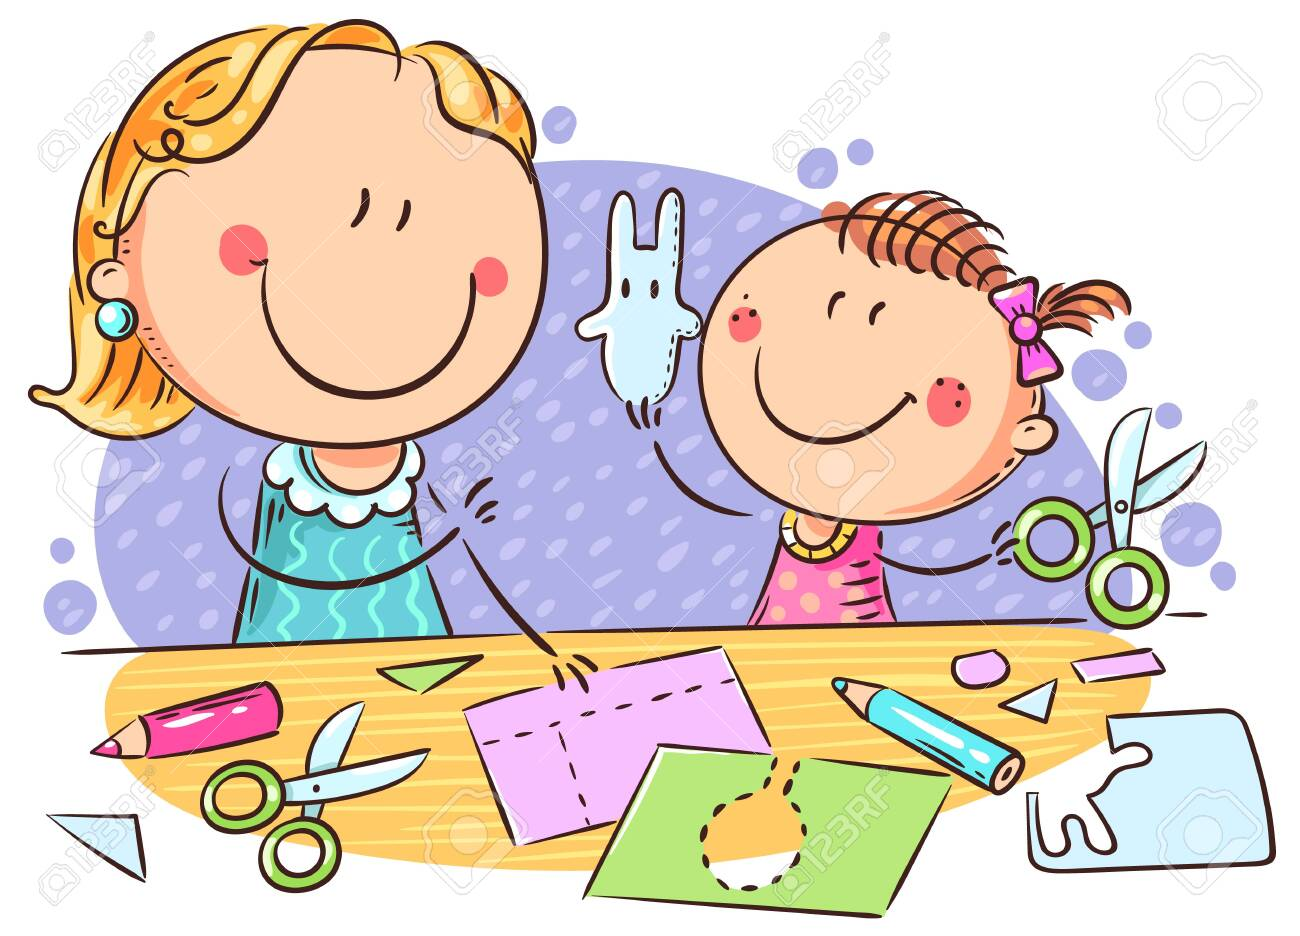 Mother or teacher and a little girl enjoy crafting together, colorful illustration - 136175256